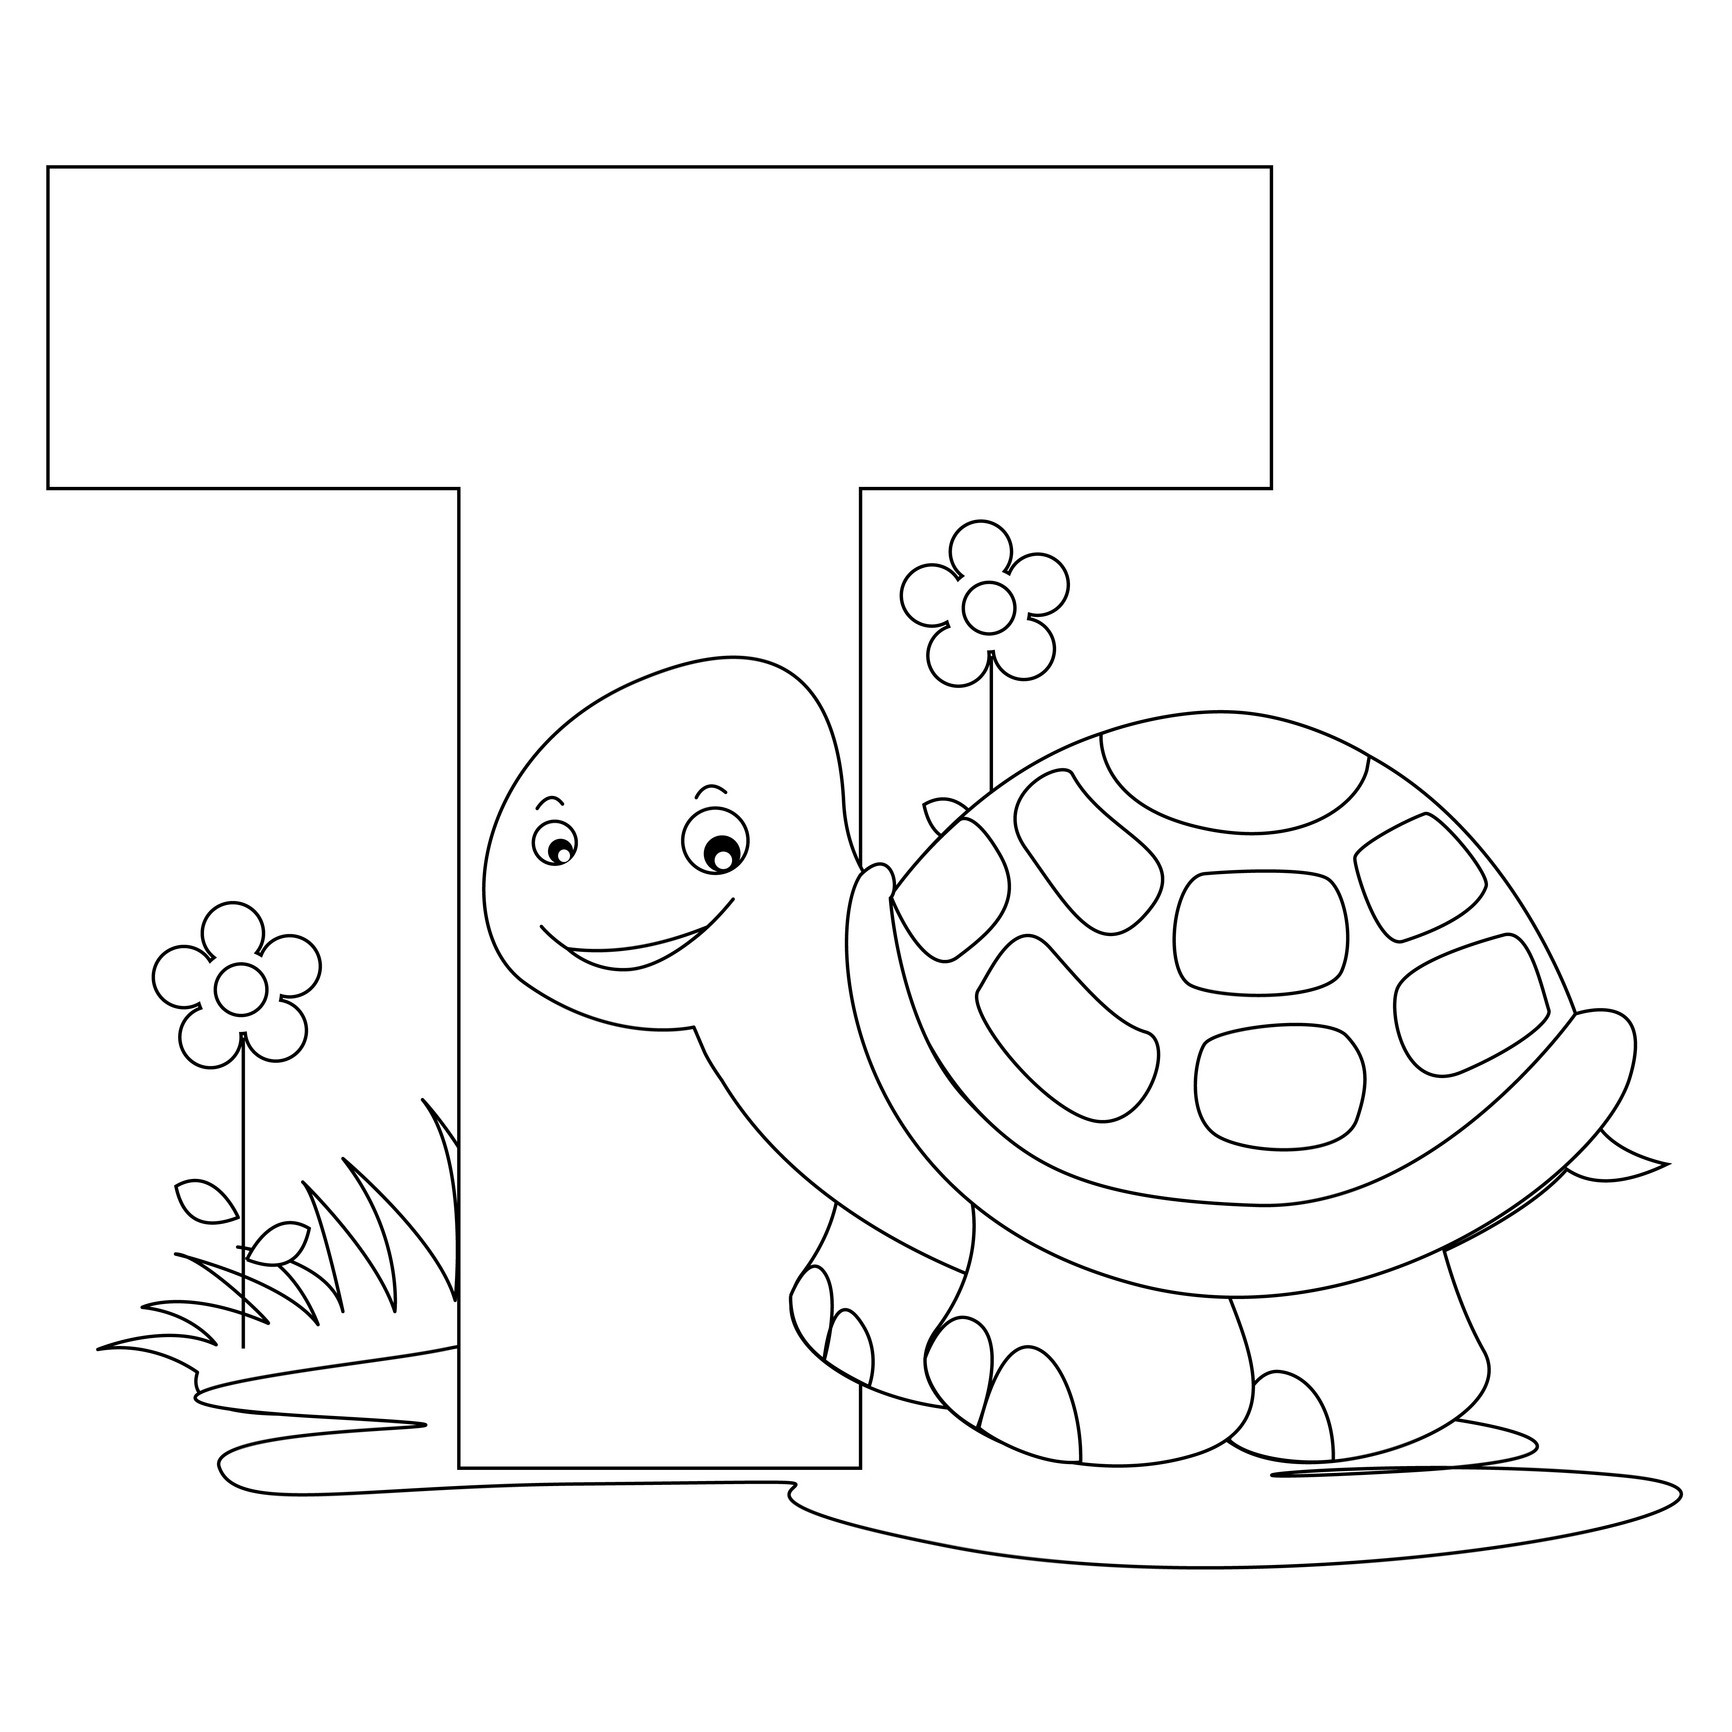 Free printable alphabet coloring pages for kids best Coloring book for kindergarten pdf